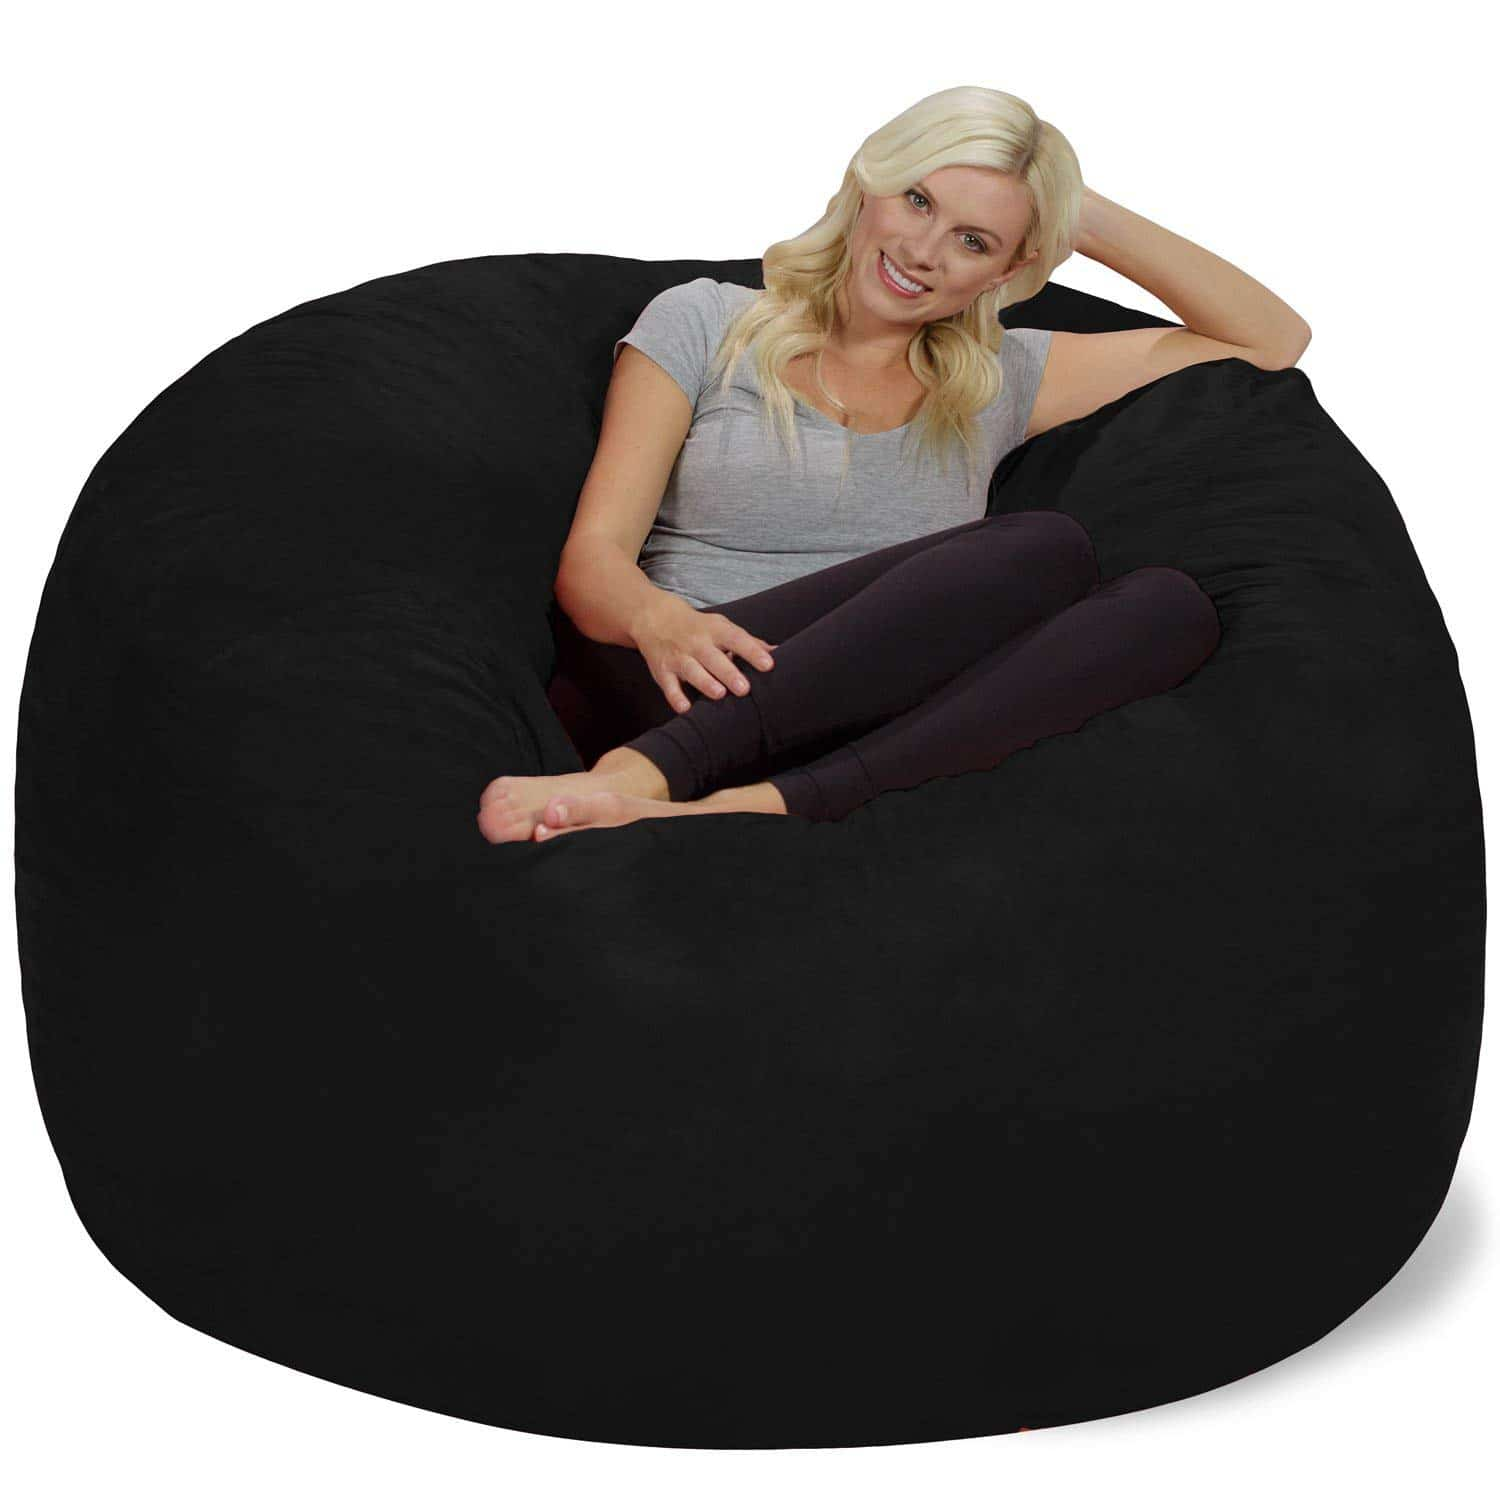 Beanbag Chairs Best Bean Bag Chairs Top 10 Bean Bag Brands And Reviews